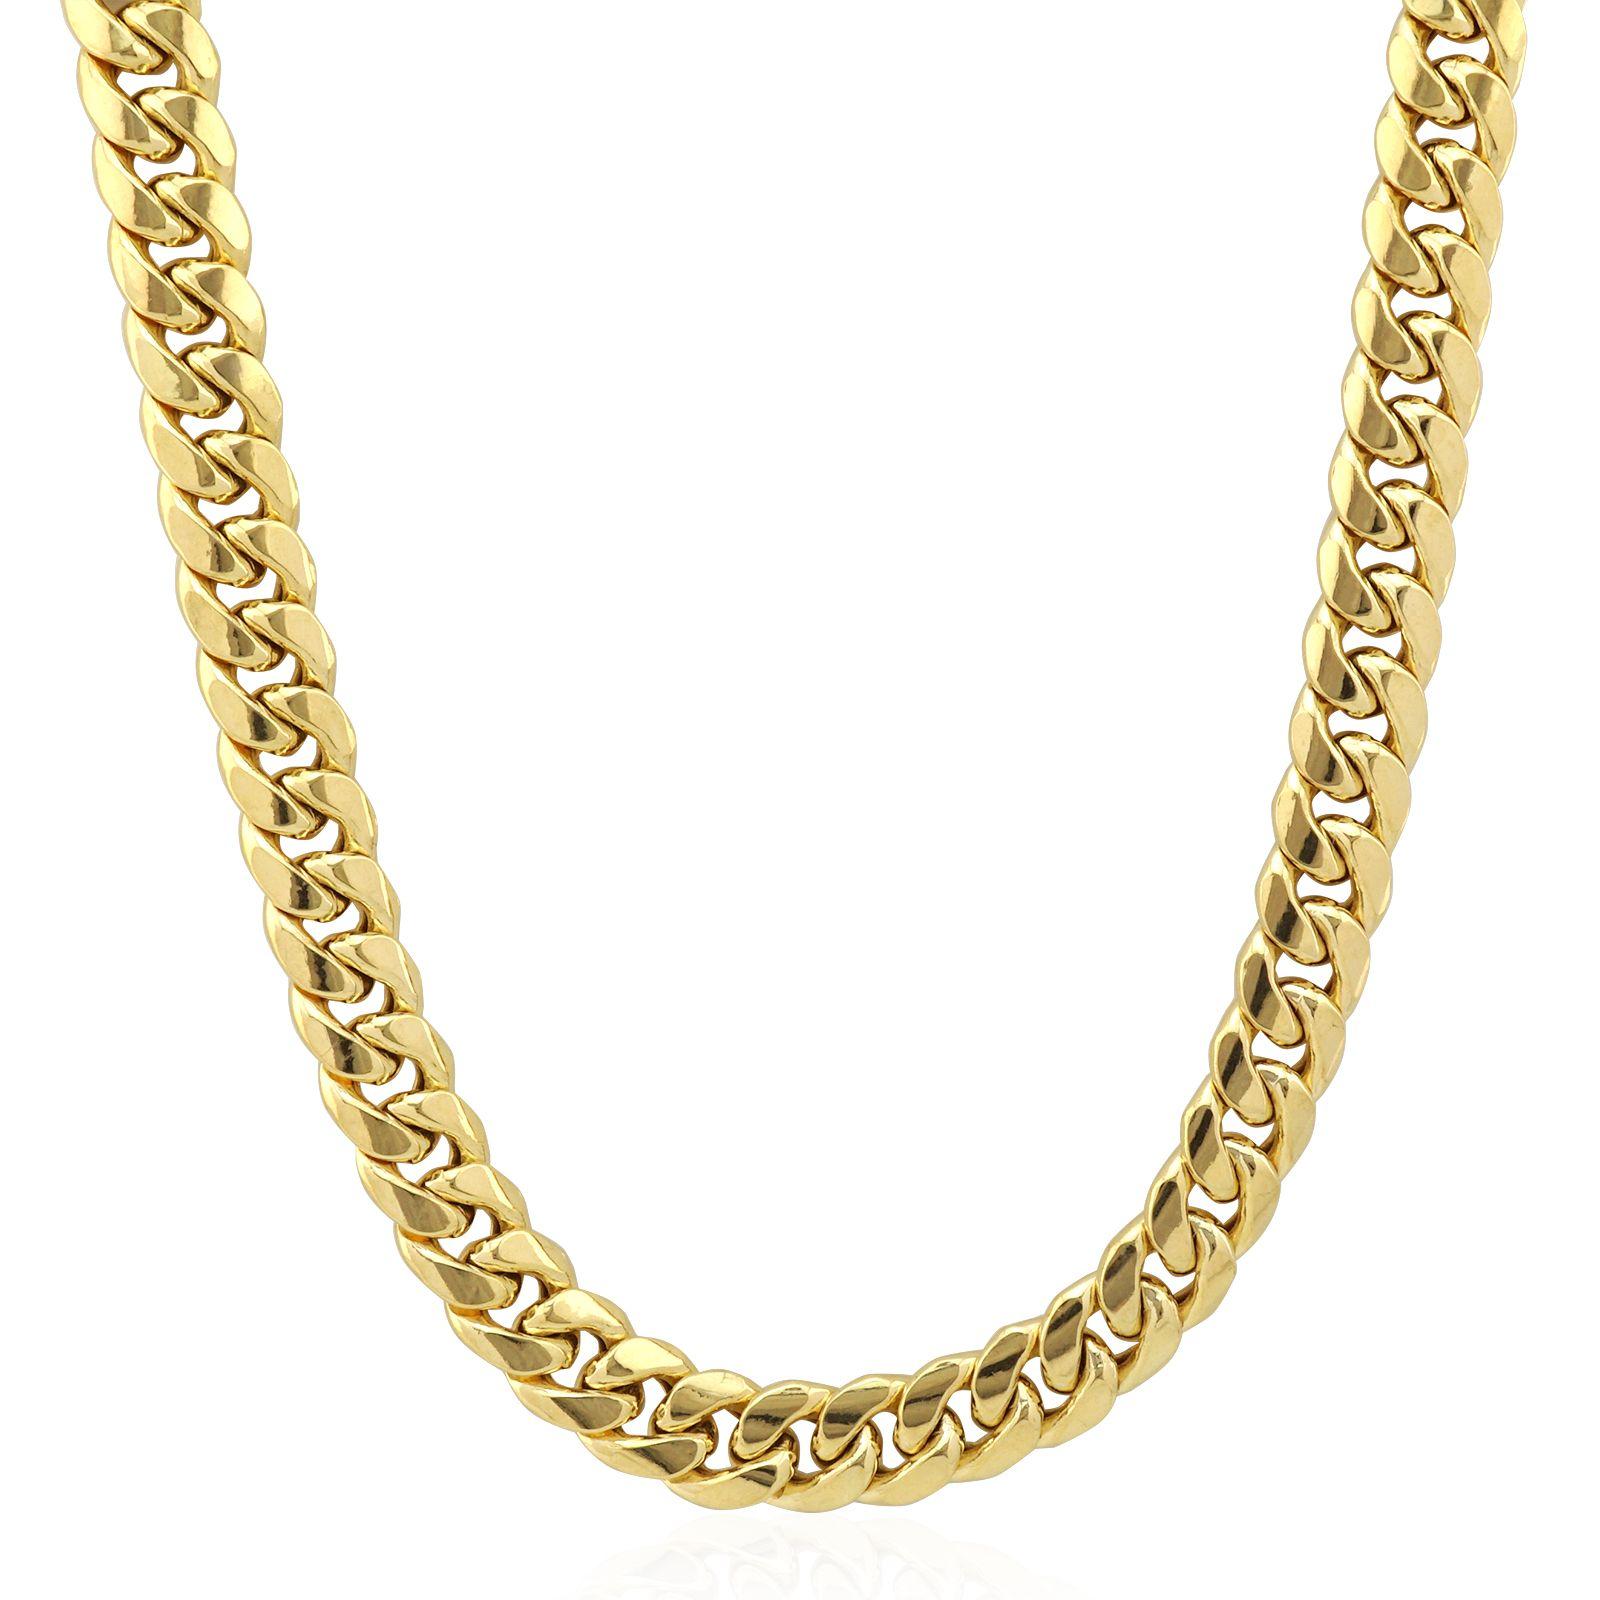 10k Yellow Gold Hollow 11mm Miami Cuban Link Chain Necklace 24 Wjd Exclusives Chain Necklace Cuban Link Chain Miami Cuban Link Chain